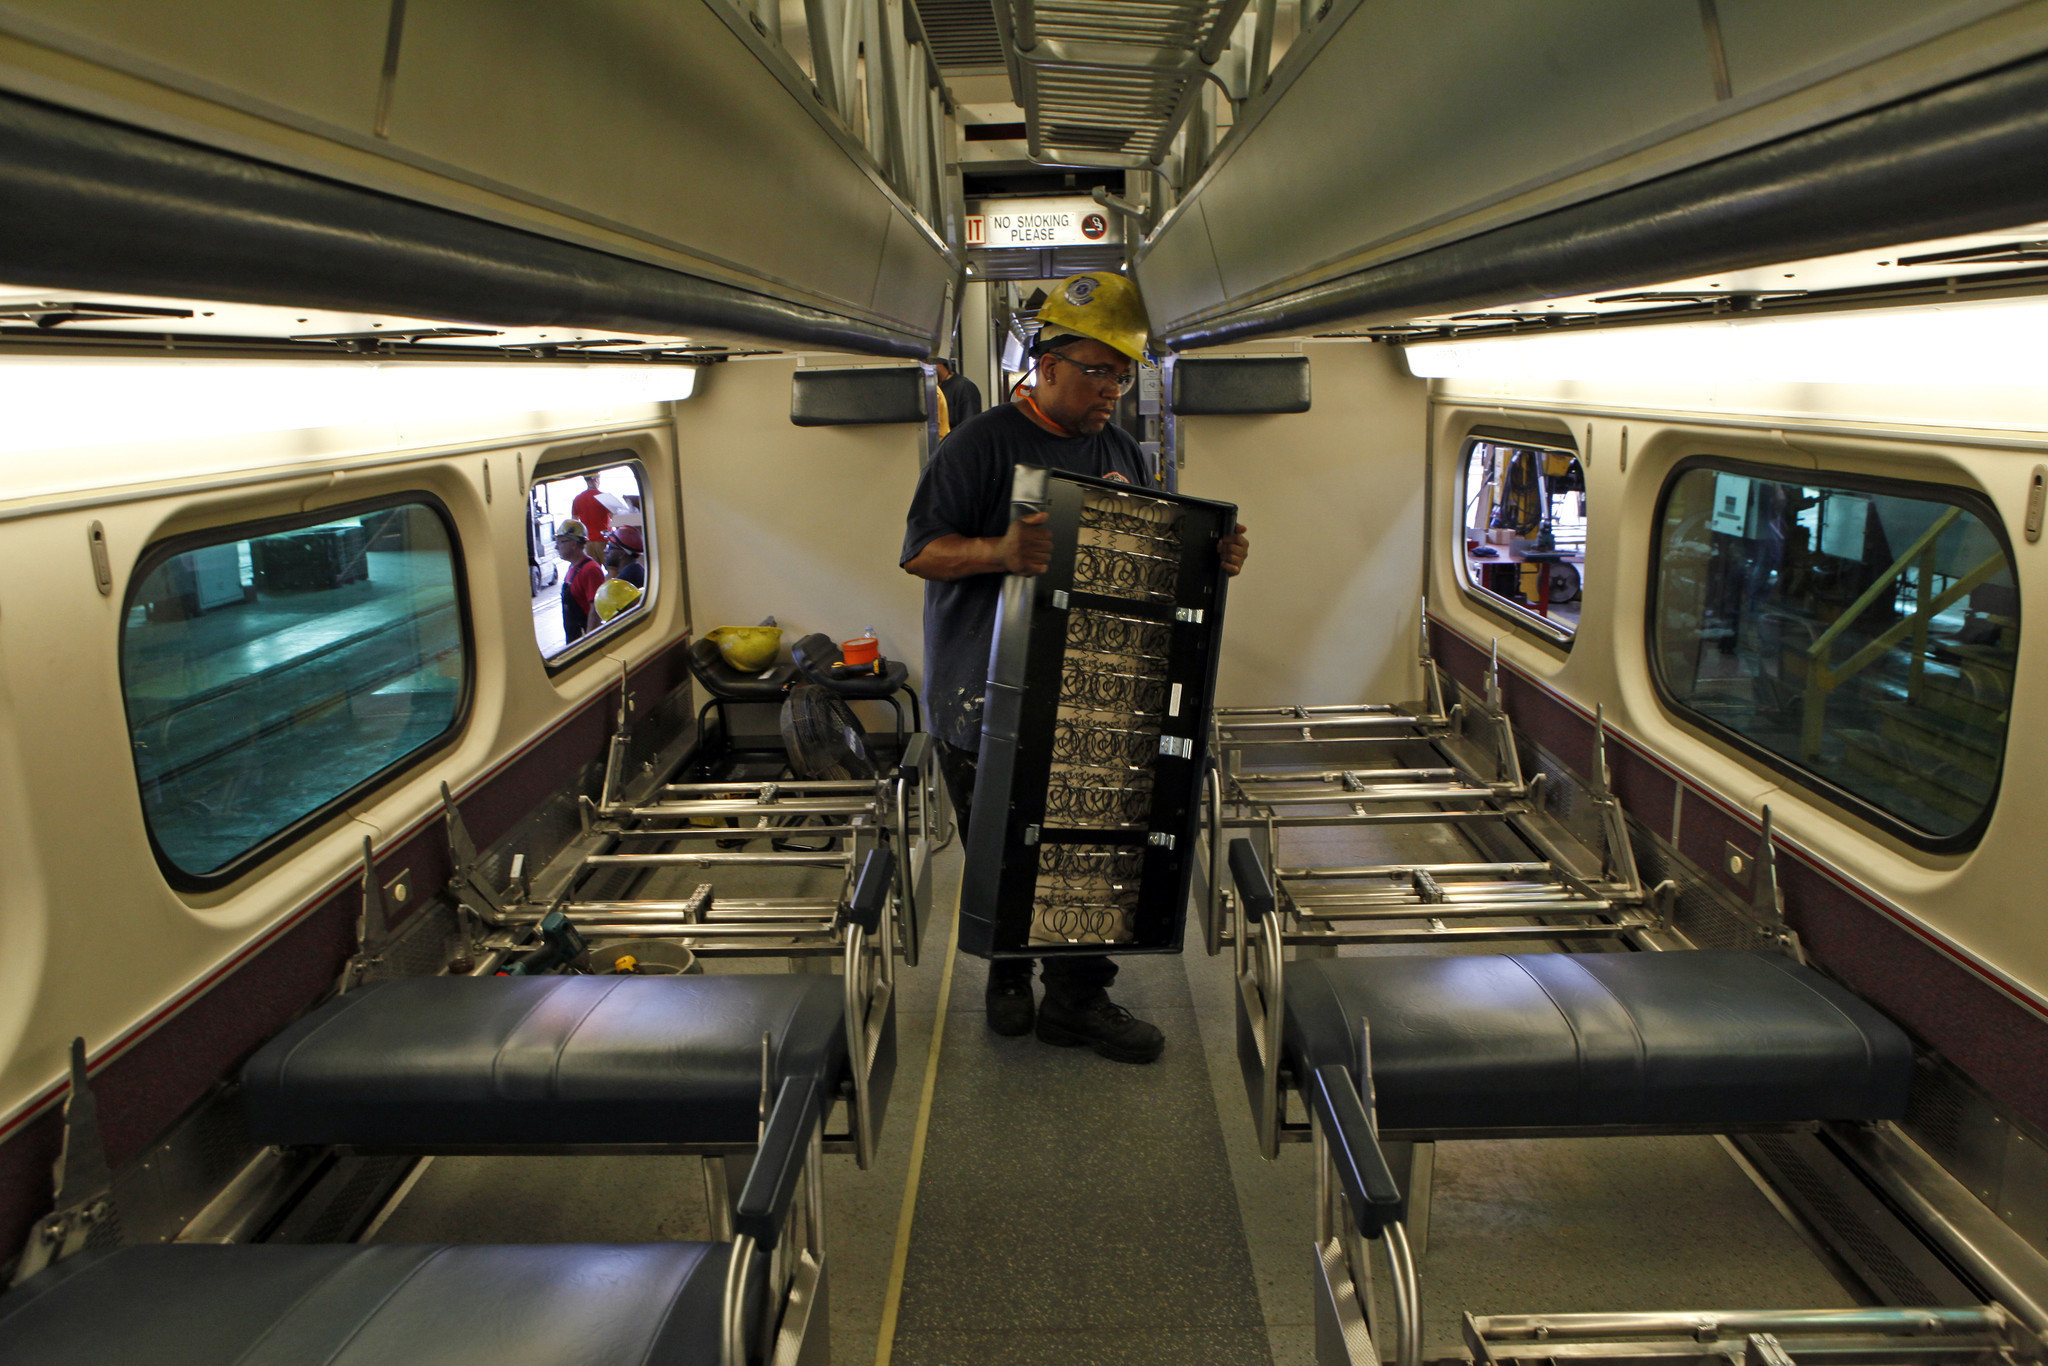 Metra refitting cars with power outlets, new toilets ...